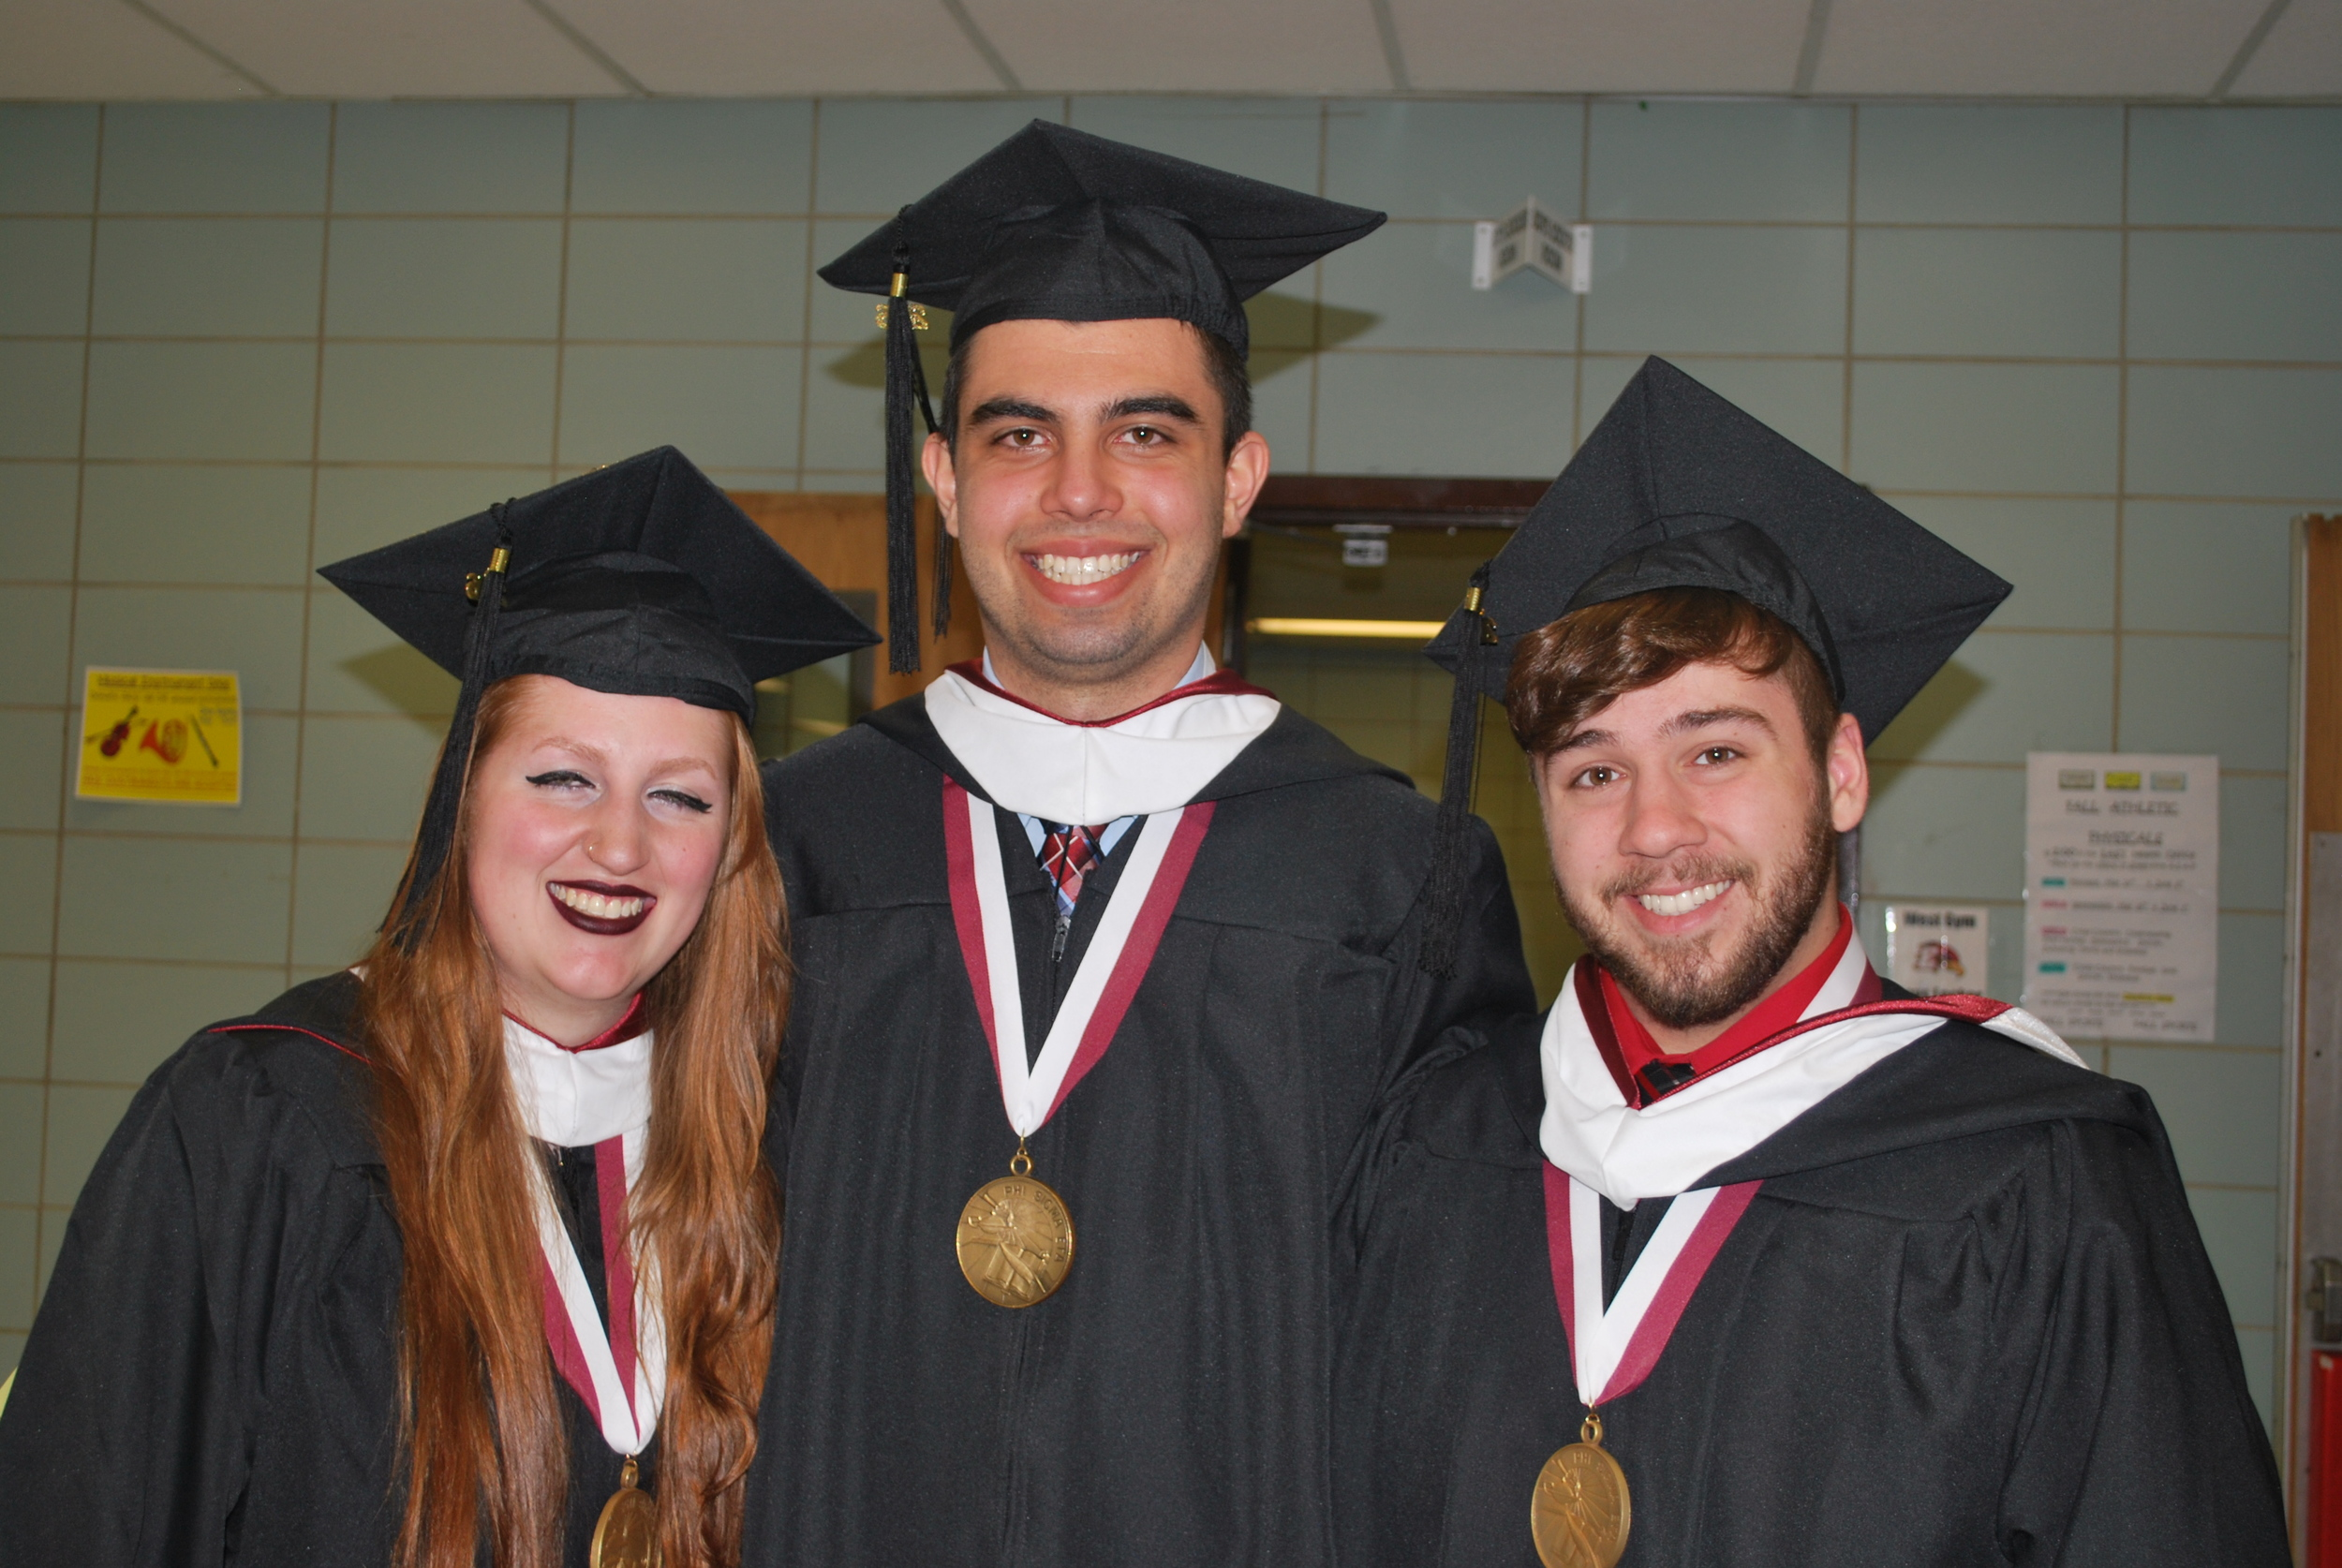 Five Towns recognized Valedictorian Melanie Magri, left, and Salutatorian Michael Makowski, center, are pictured with Kyle Young, a recipient of the Provost's Award for outstanding academic achievement.